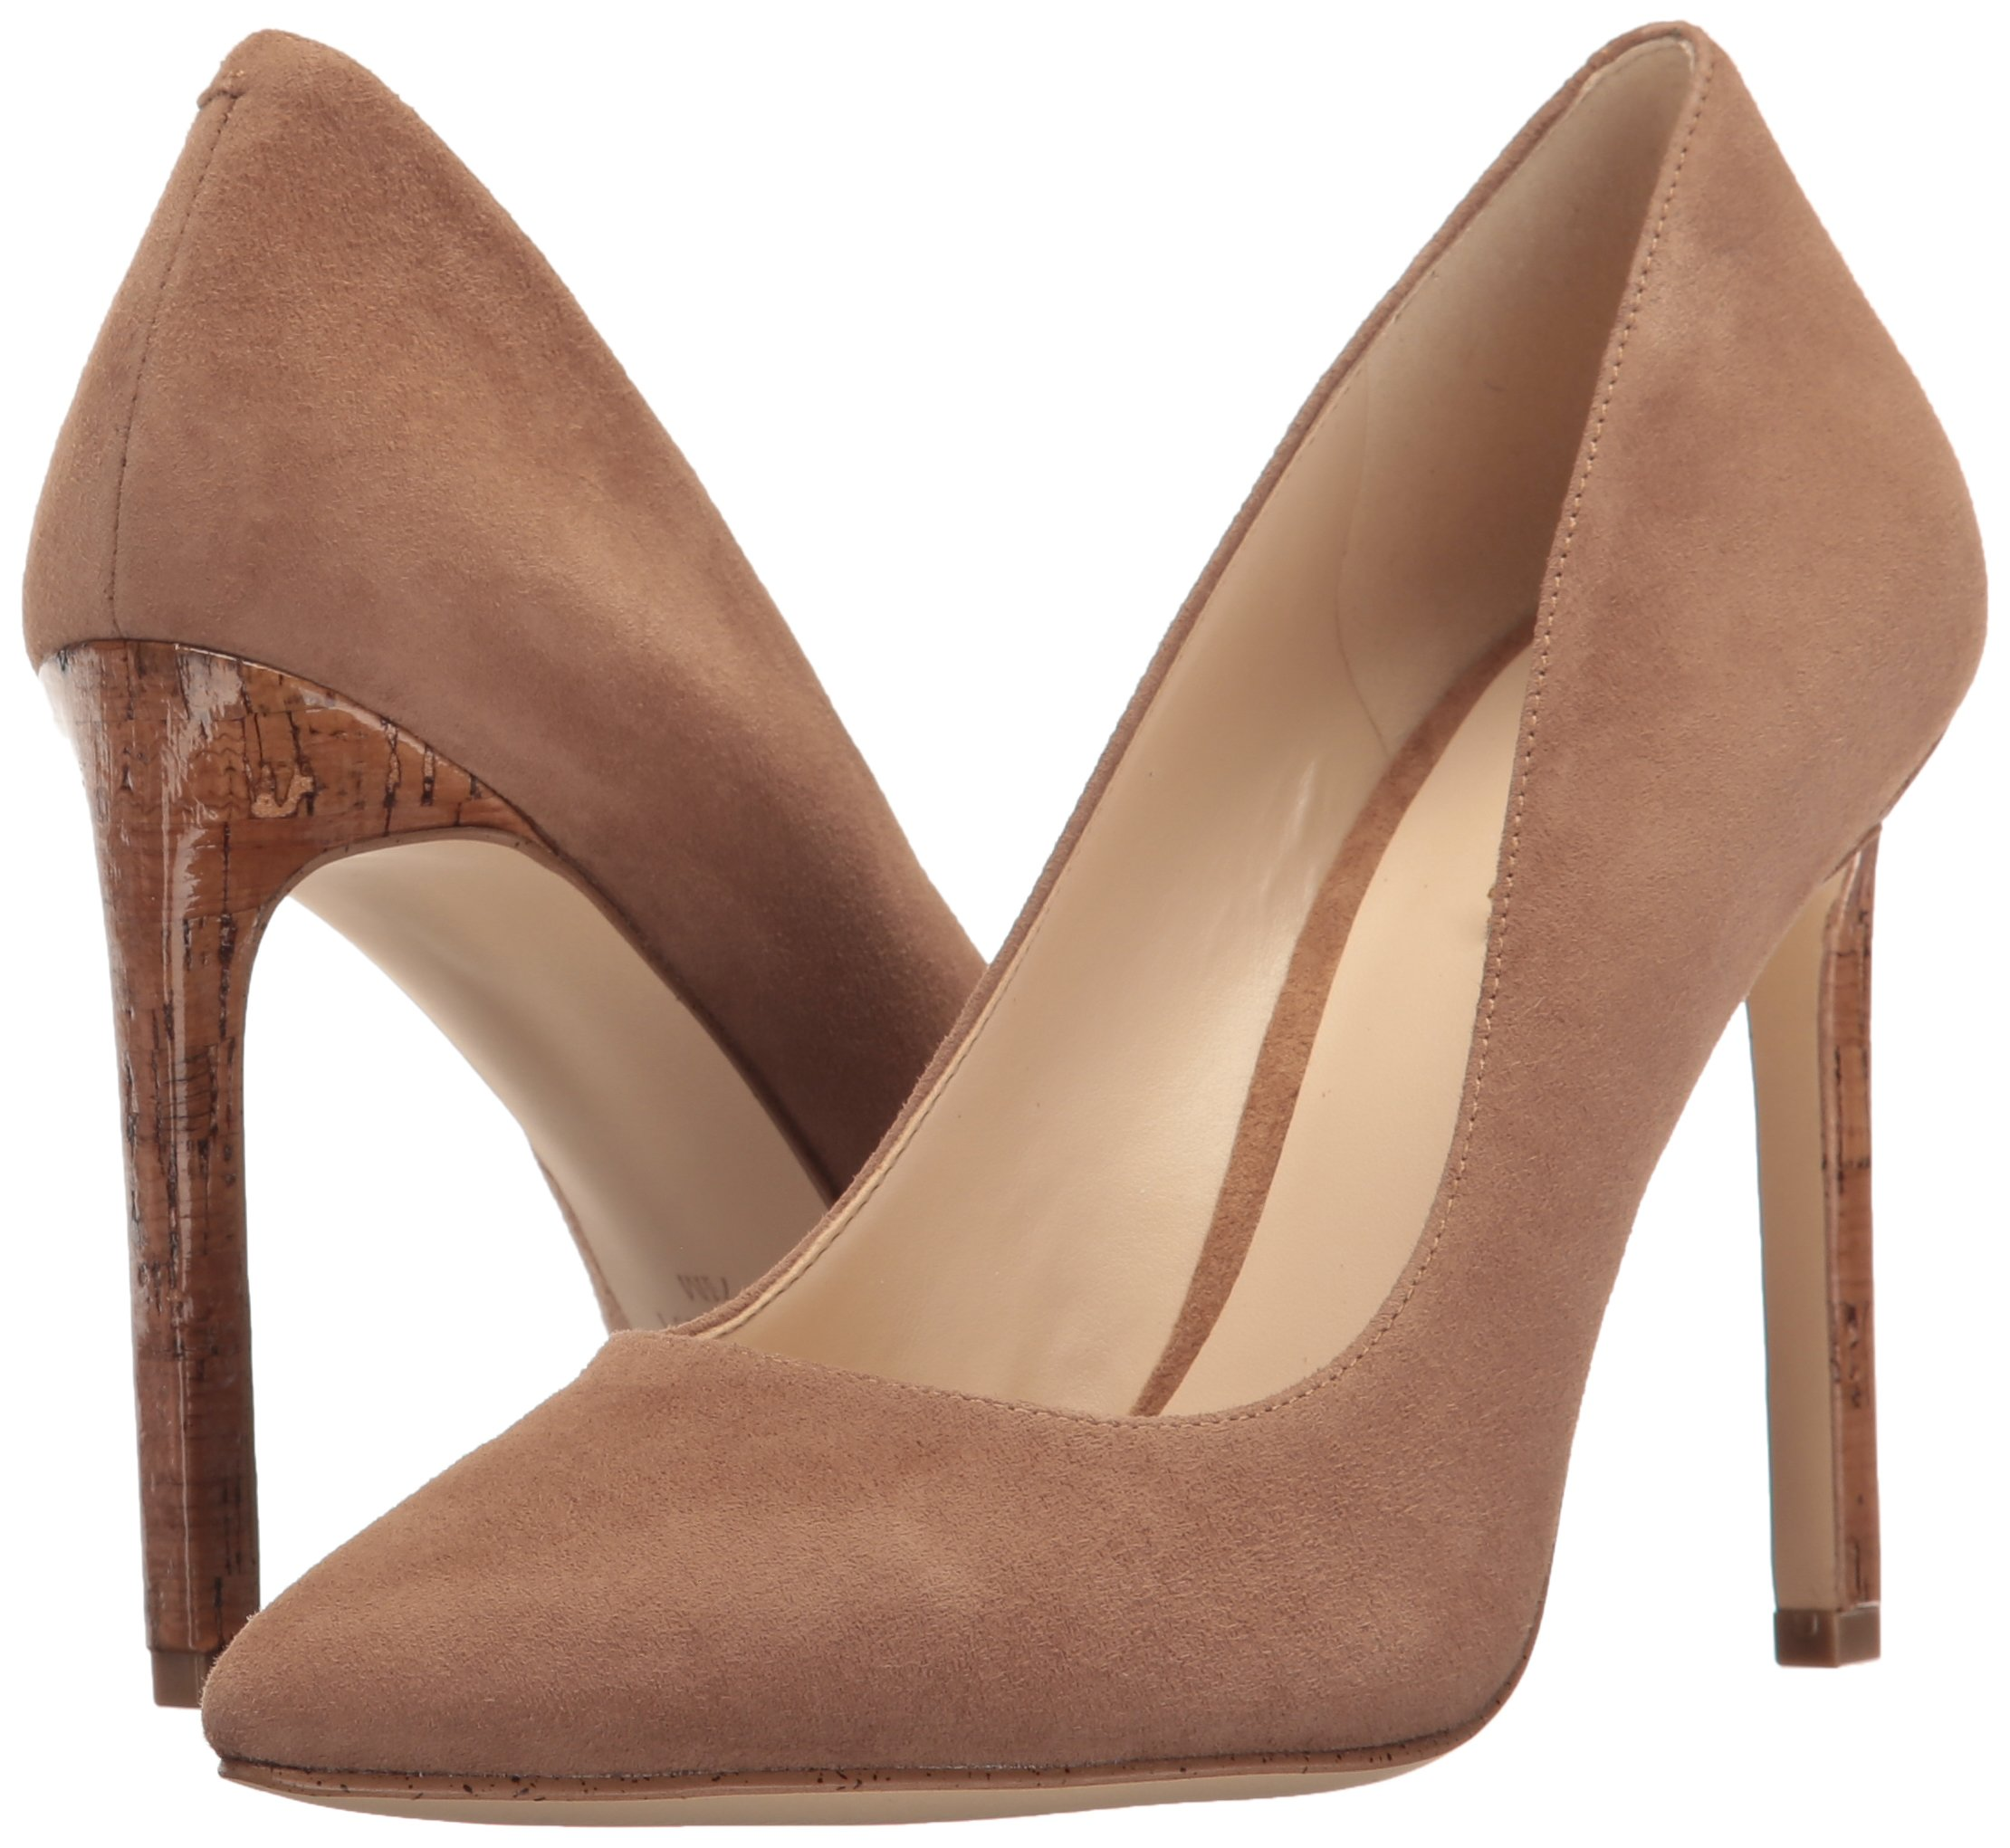 Nine West Women's Tatiana Suede Dress Pump, Dark Natural, 8 M US by Nine West (Image #6)